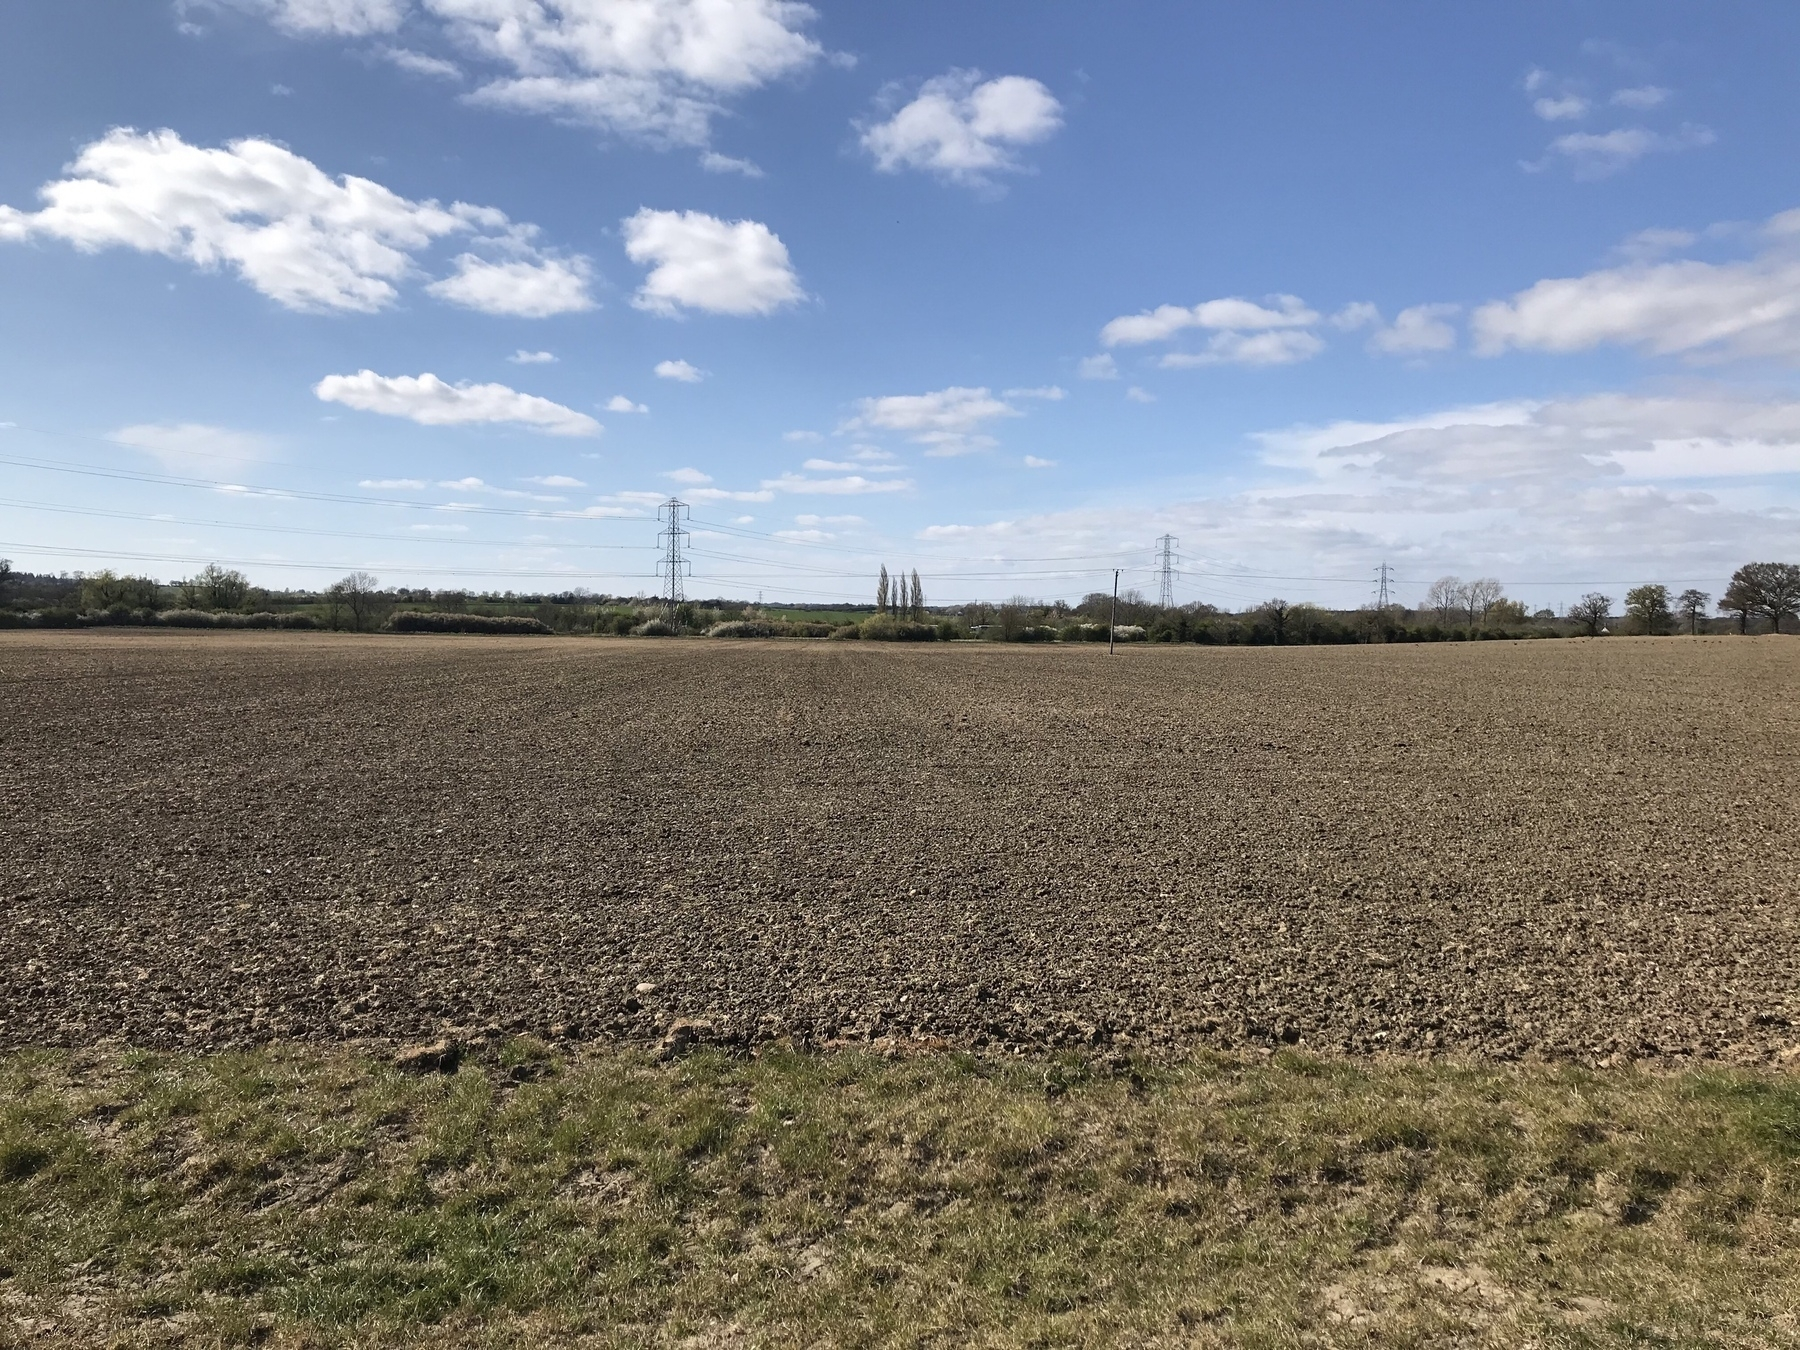 A field, with no path